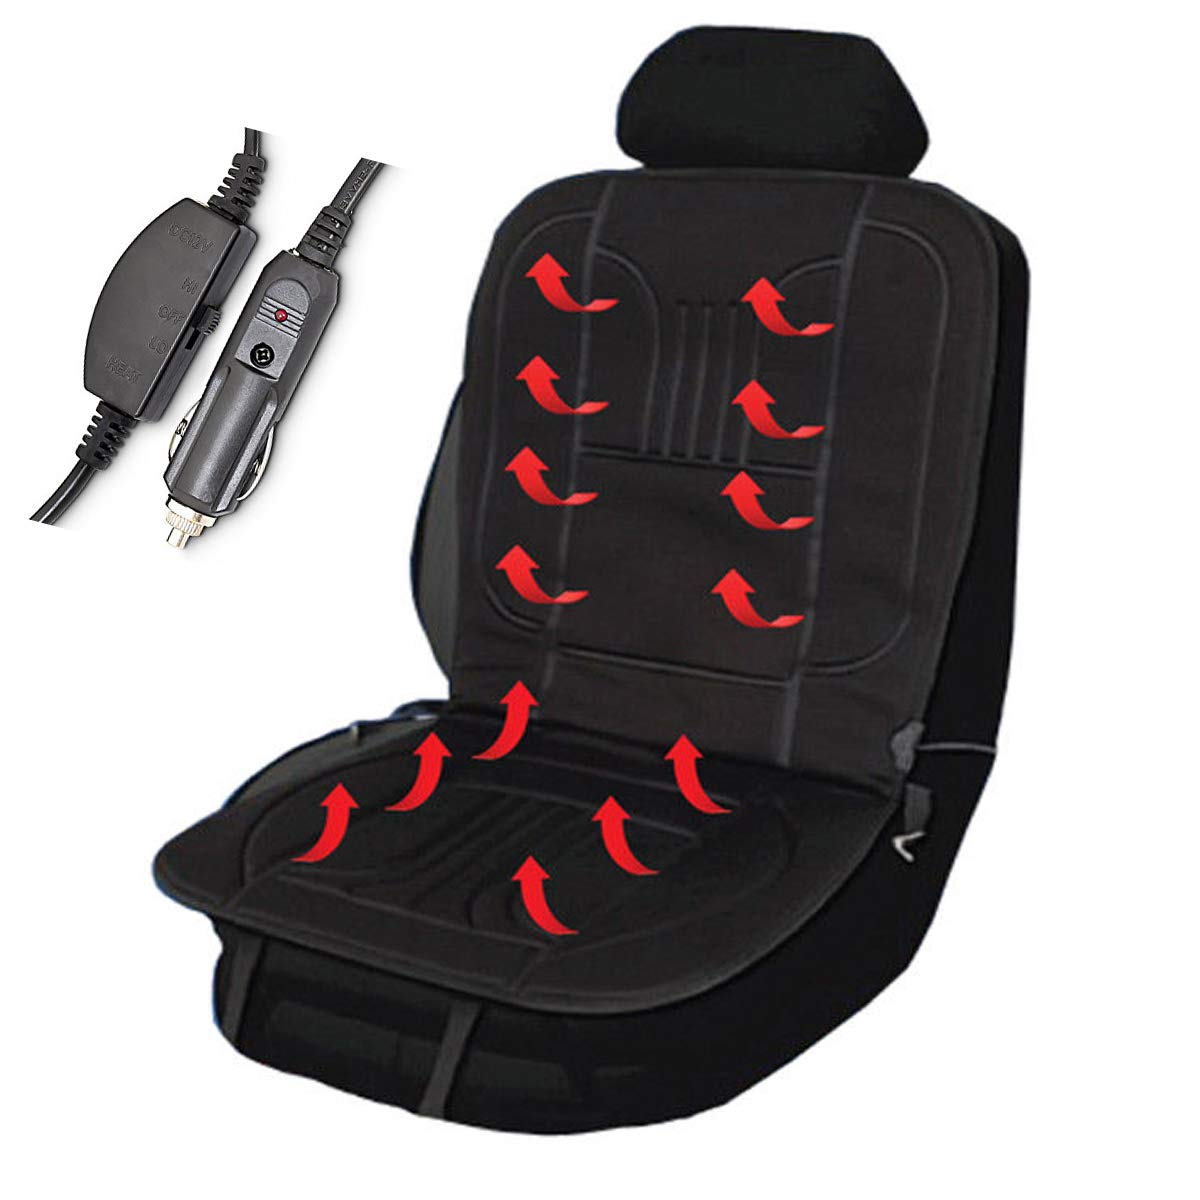 FiNeWaY 12V Heated Car Van Front Seat Cover 12 Volt Padded Thermal Cushion Universal Fit With 2 Heat Settings- Warm Cosy Winter Travel Seat – With Elasticated Strap to Secure the Seat Fineway.